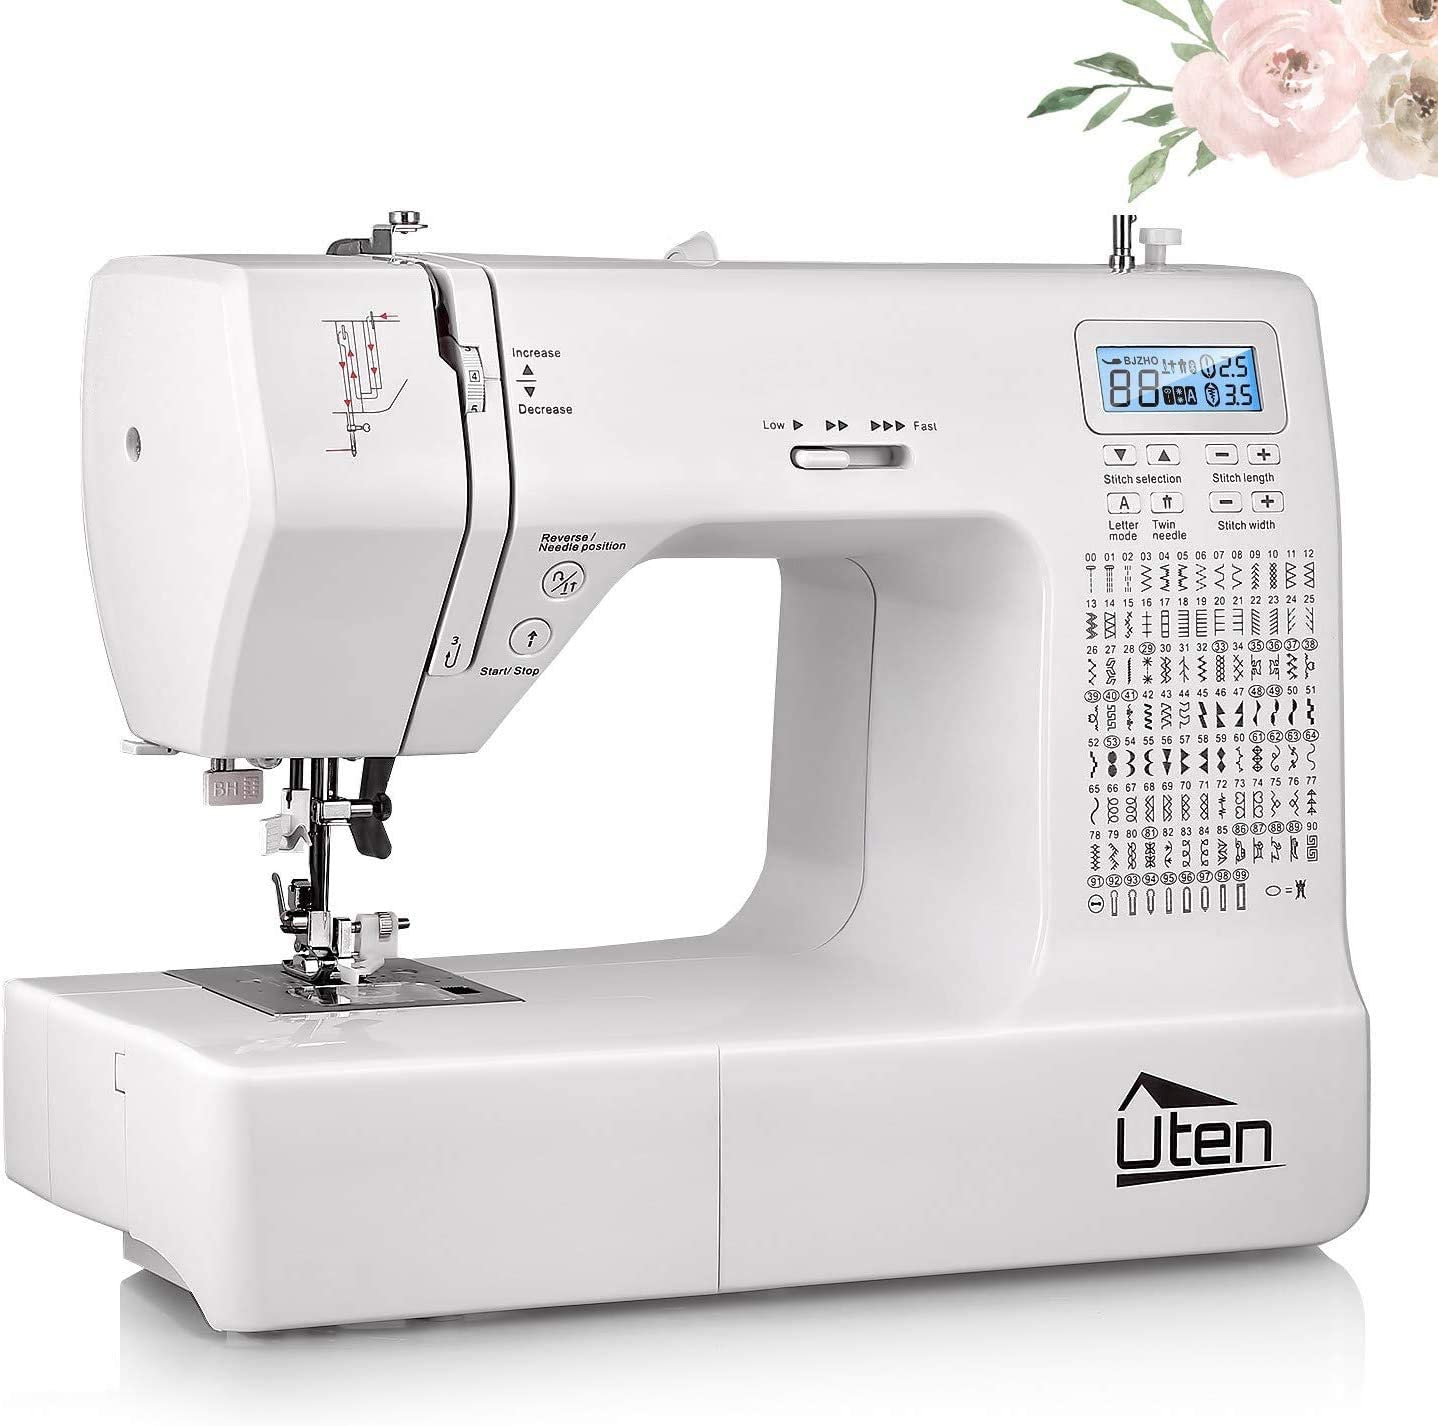 Uten Computerized Electronic Sewing Machine for £186.99